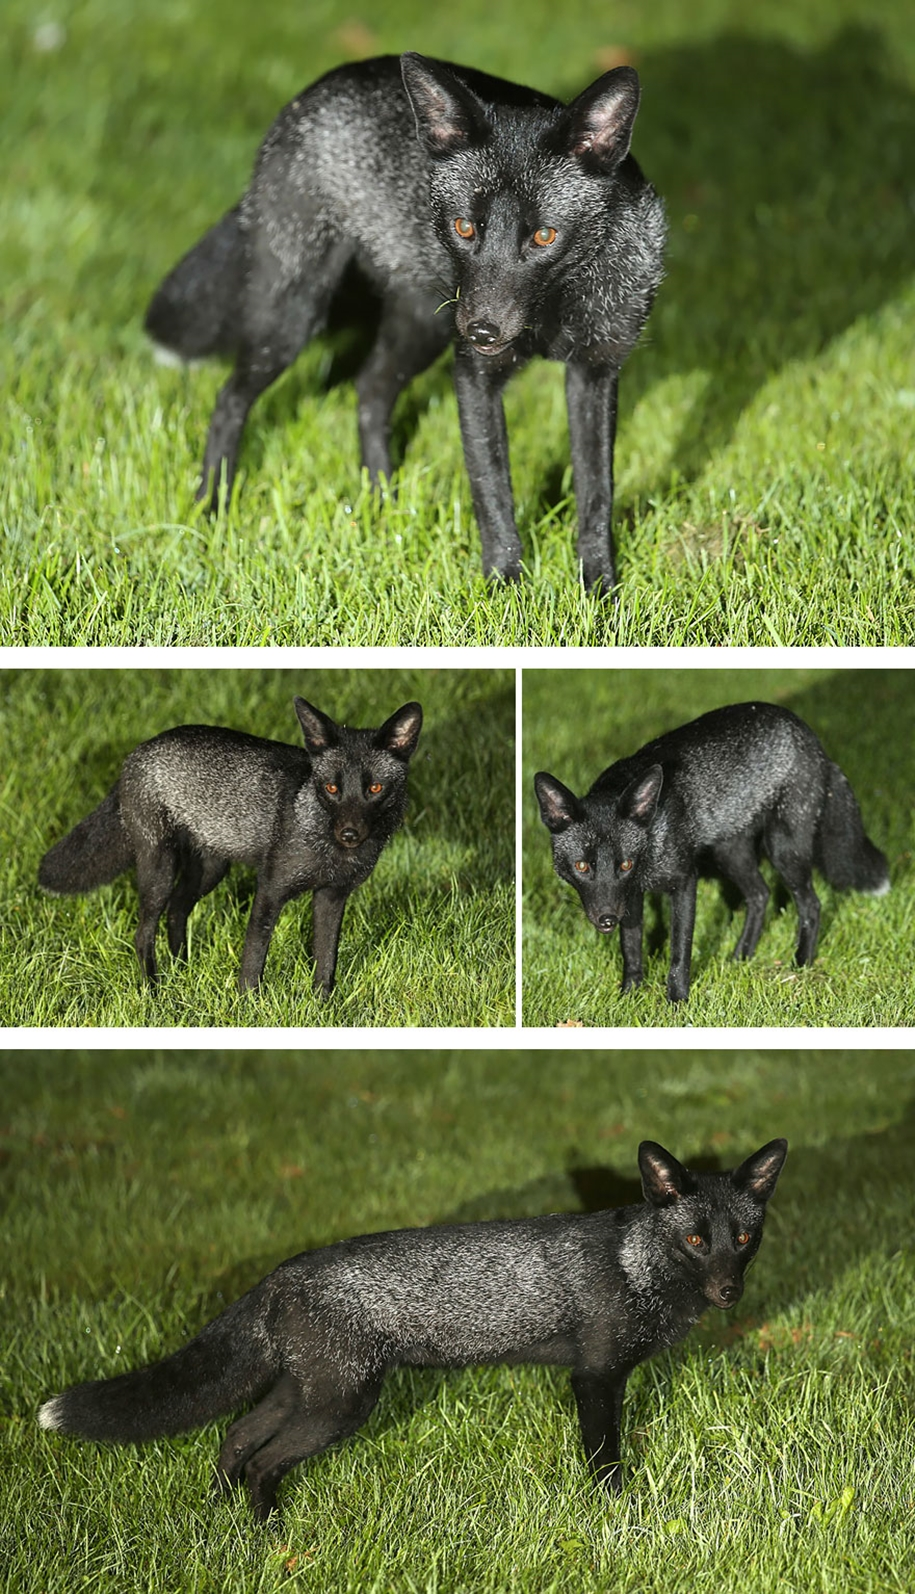 The rare beauty of the black Fox 35